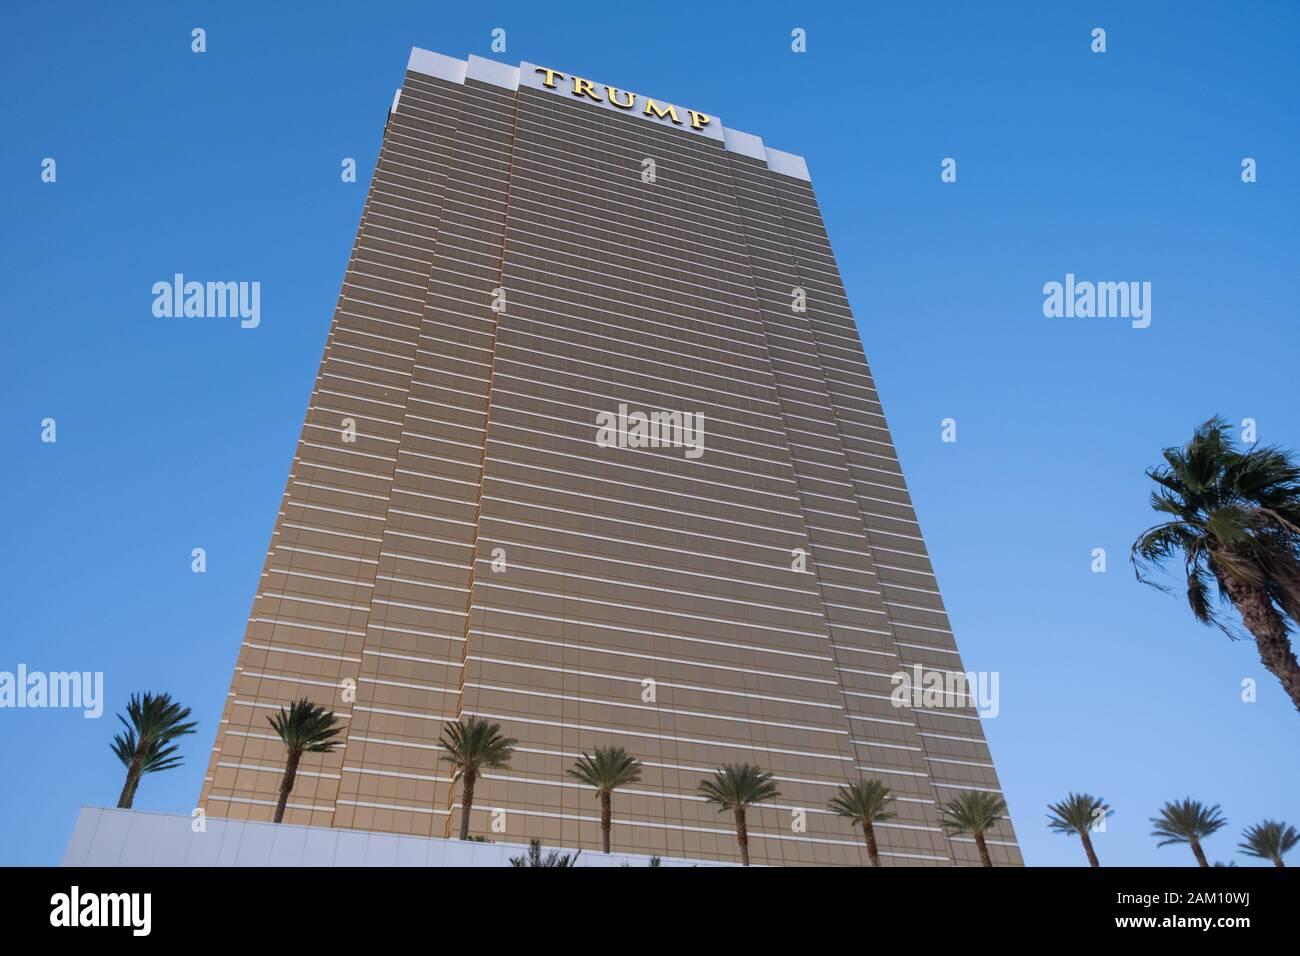 LAS VEGAS, USA - NOVEMBER 26: International Trump Tower hotel in Las Vegas on November 26, 2019 in Las Vegas, USA. Stock Photo